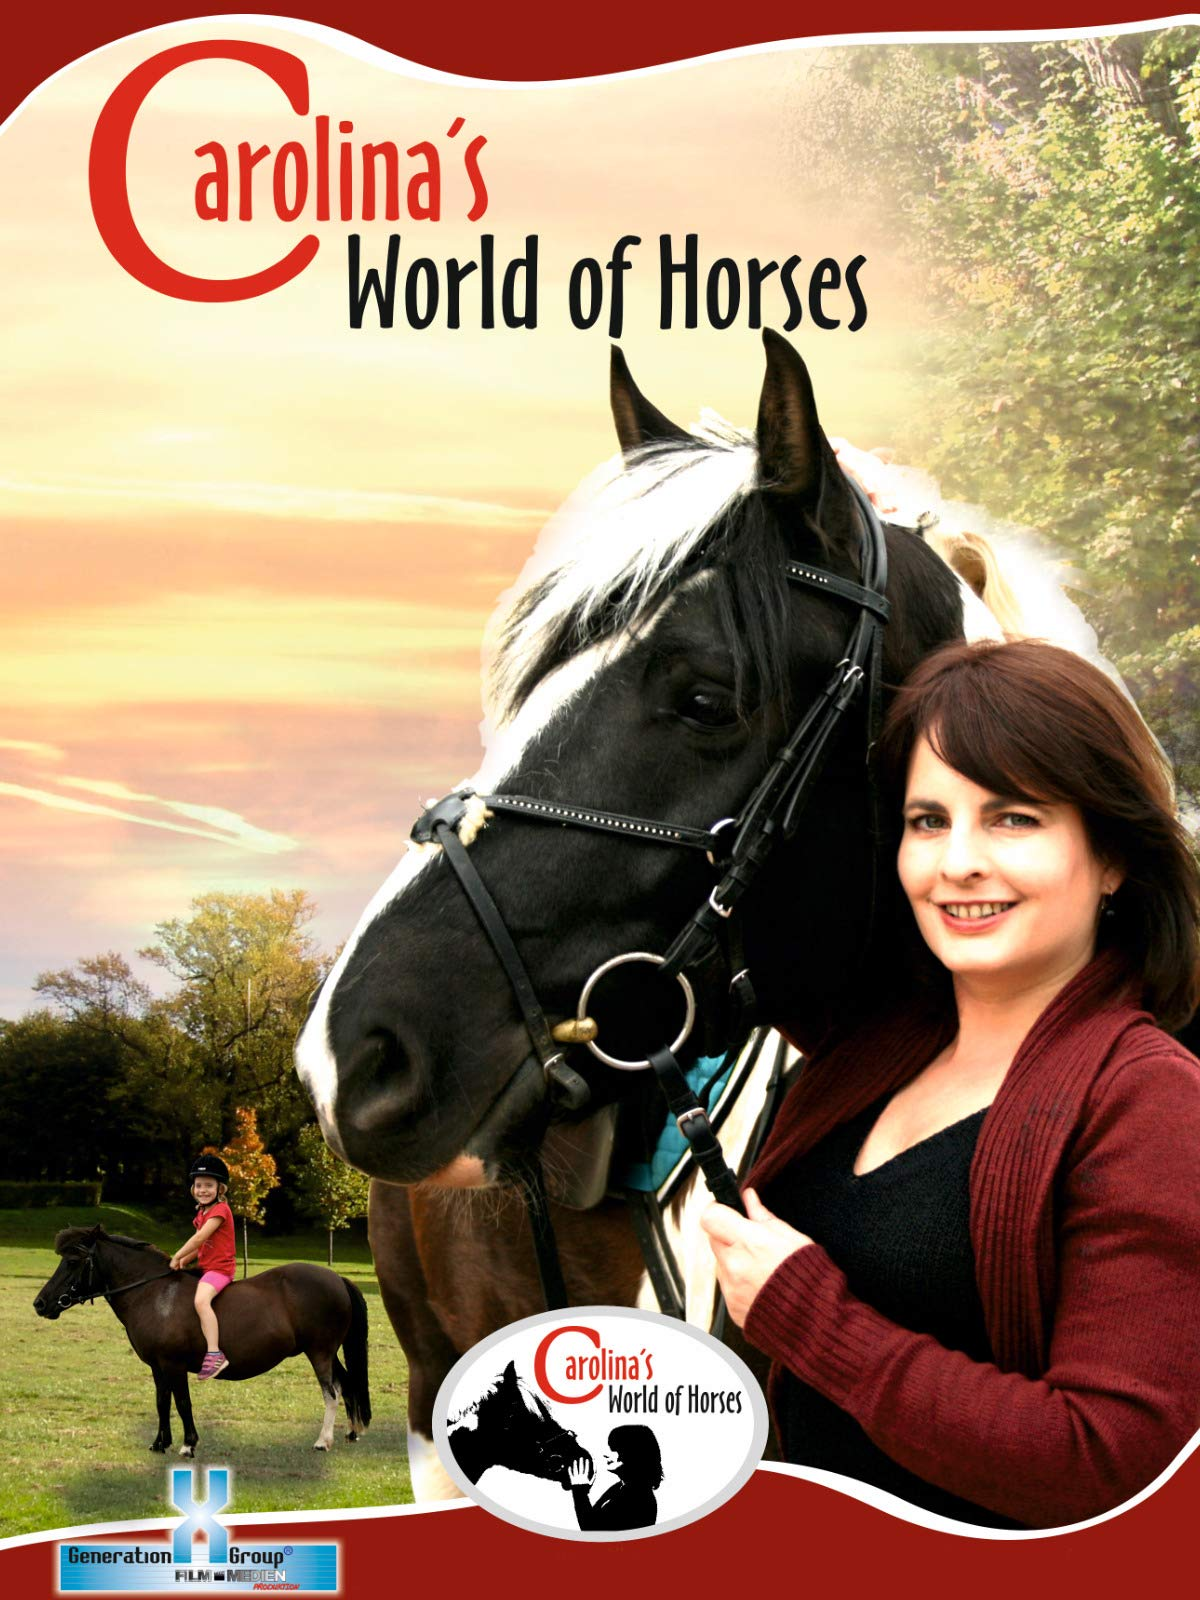 Carolina's World of Horses